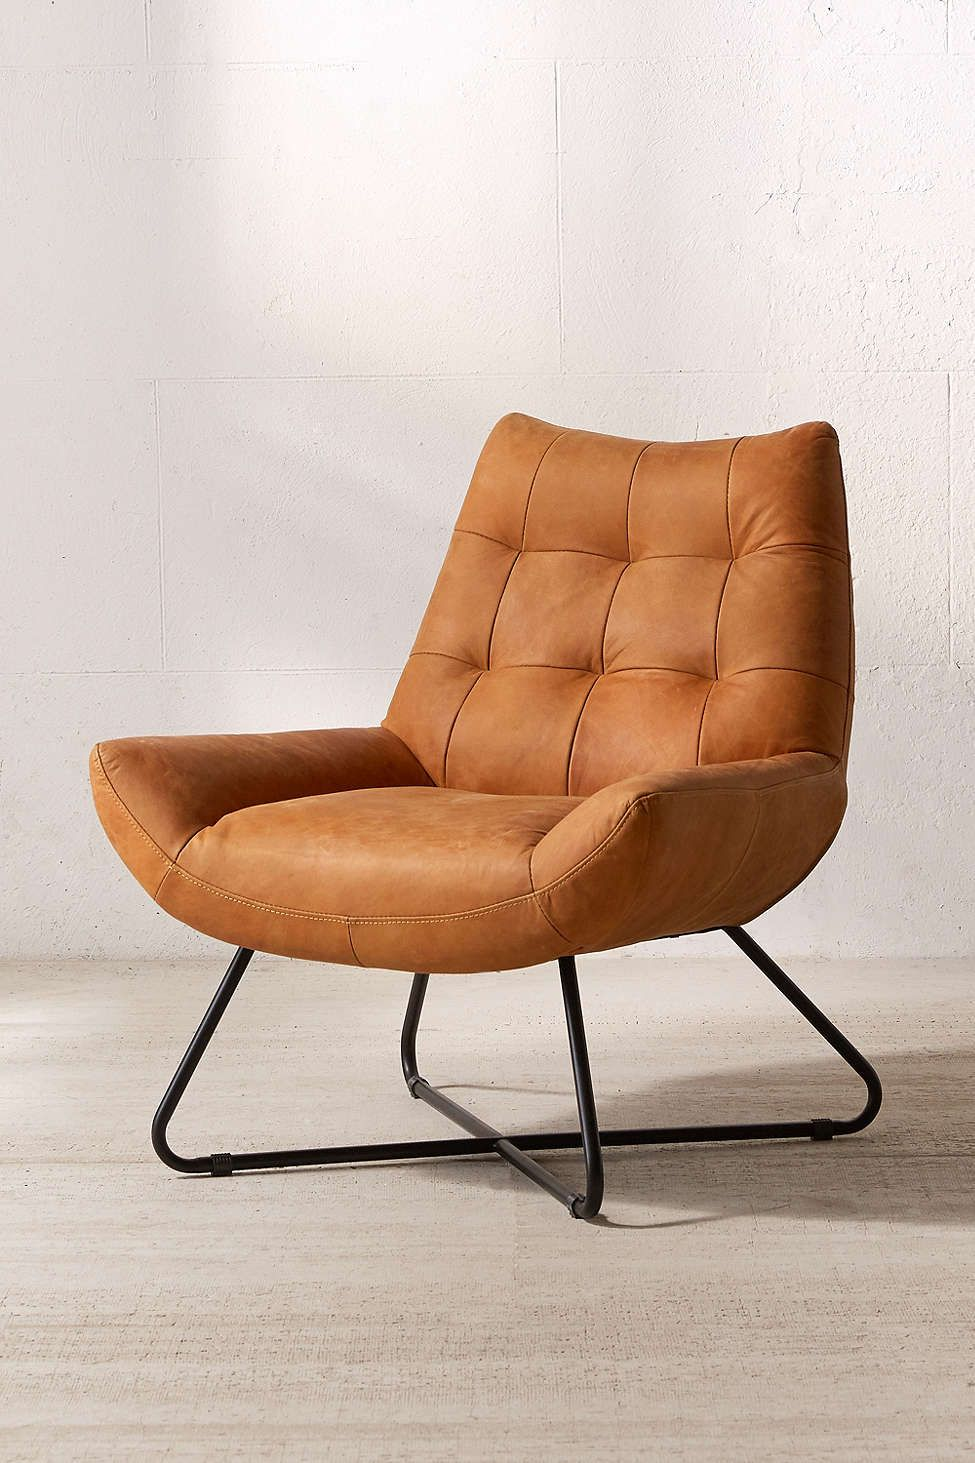 Merveilleux Modern But Comfy Leather Lounger Chair   Urban Outfitters